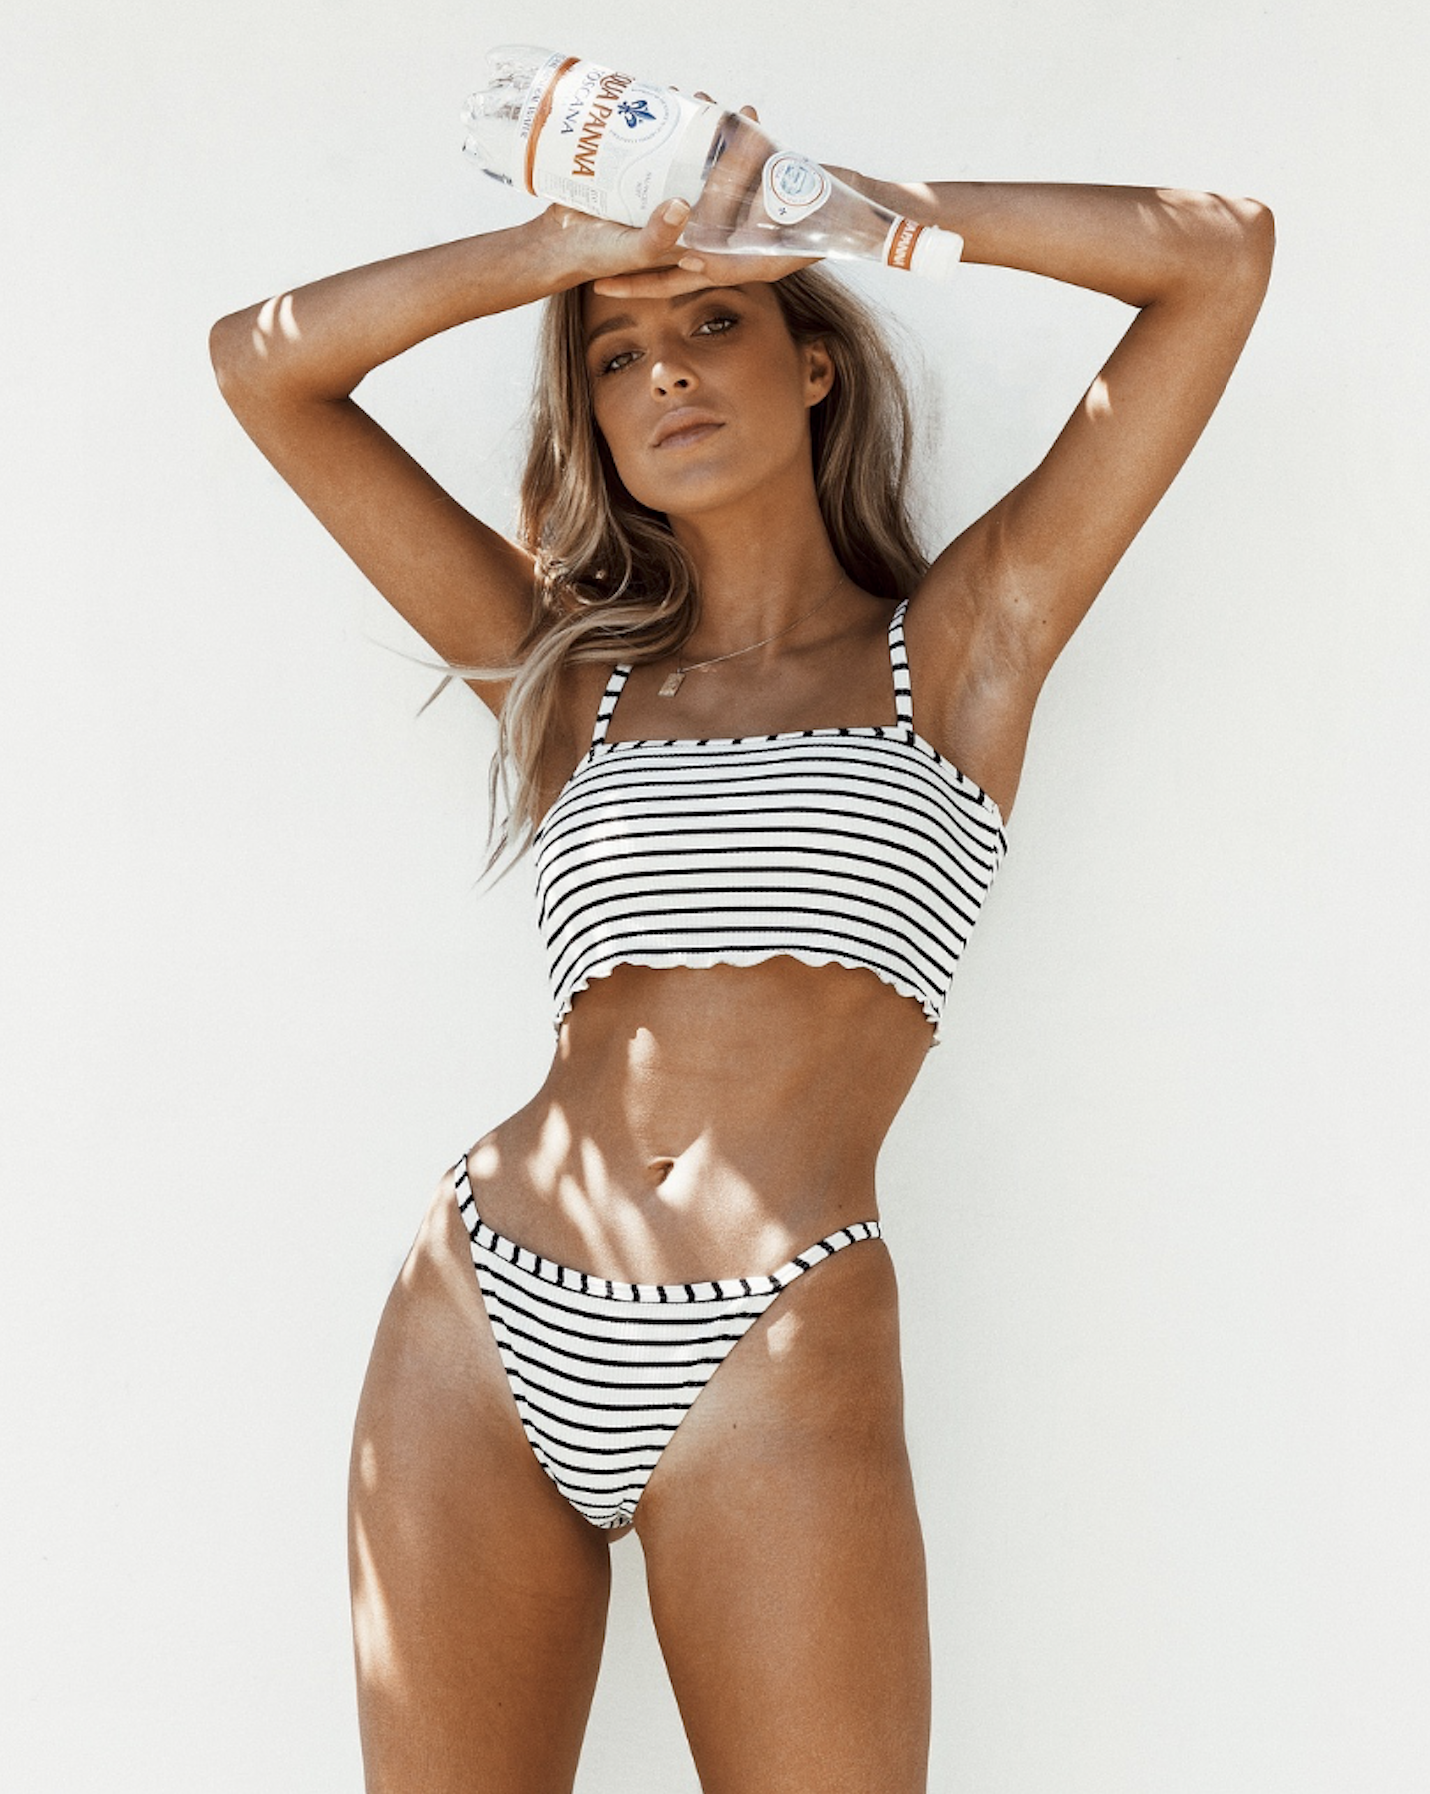 91114ede09b49 21 Top Swimwear Brands You Need to Know About